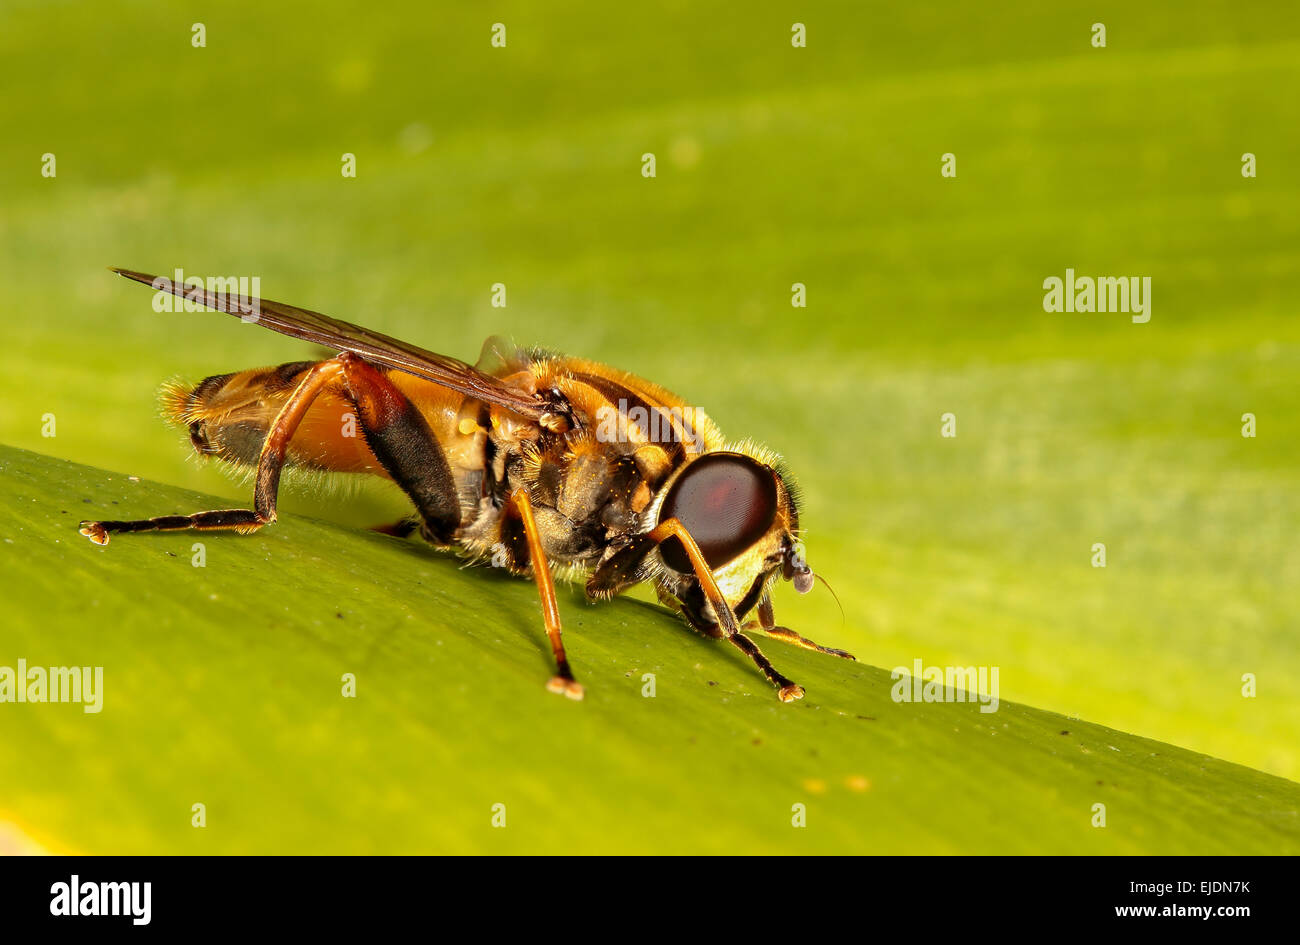 stacked-image-of-a-garden-hoverfly-helophilus-pendulus-at-rest-on-EJDN7K.jpg